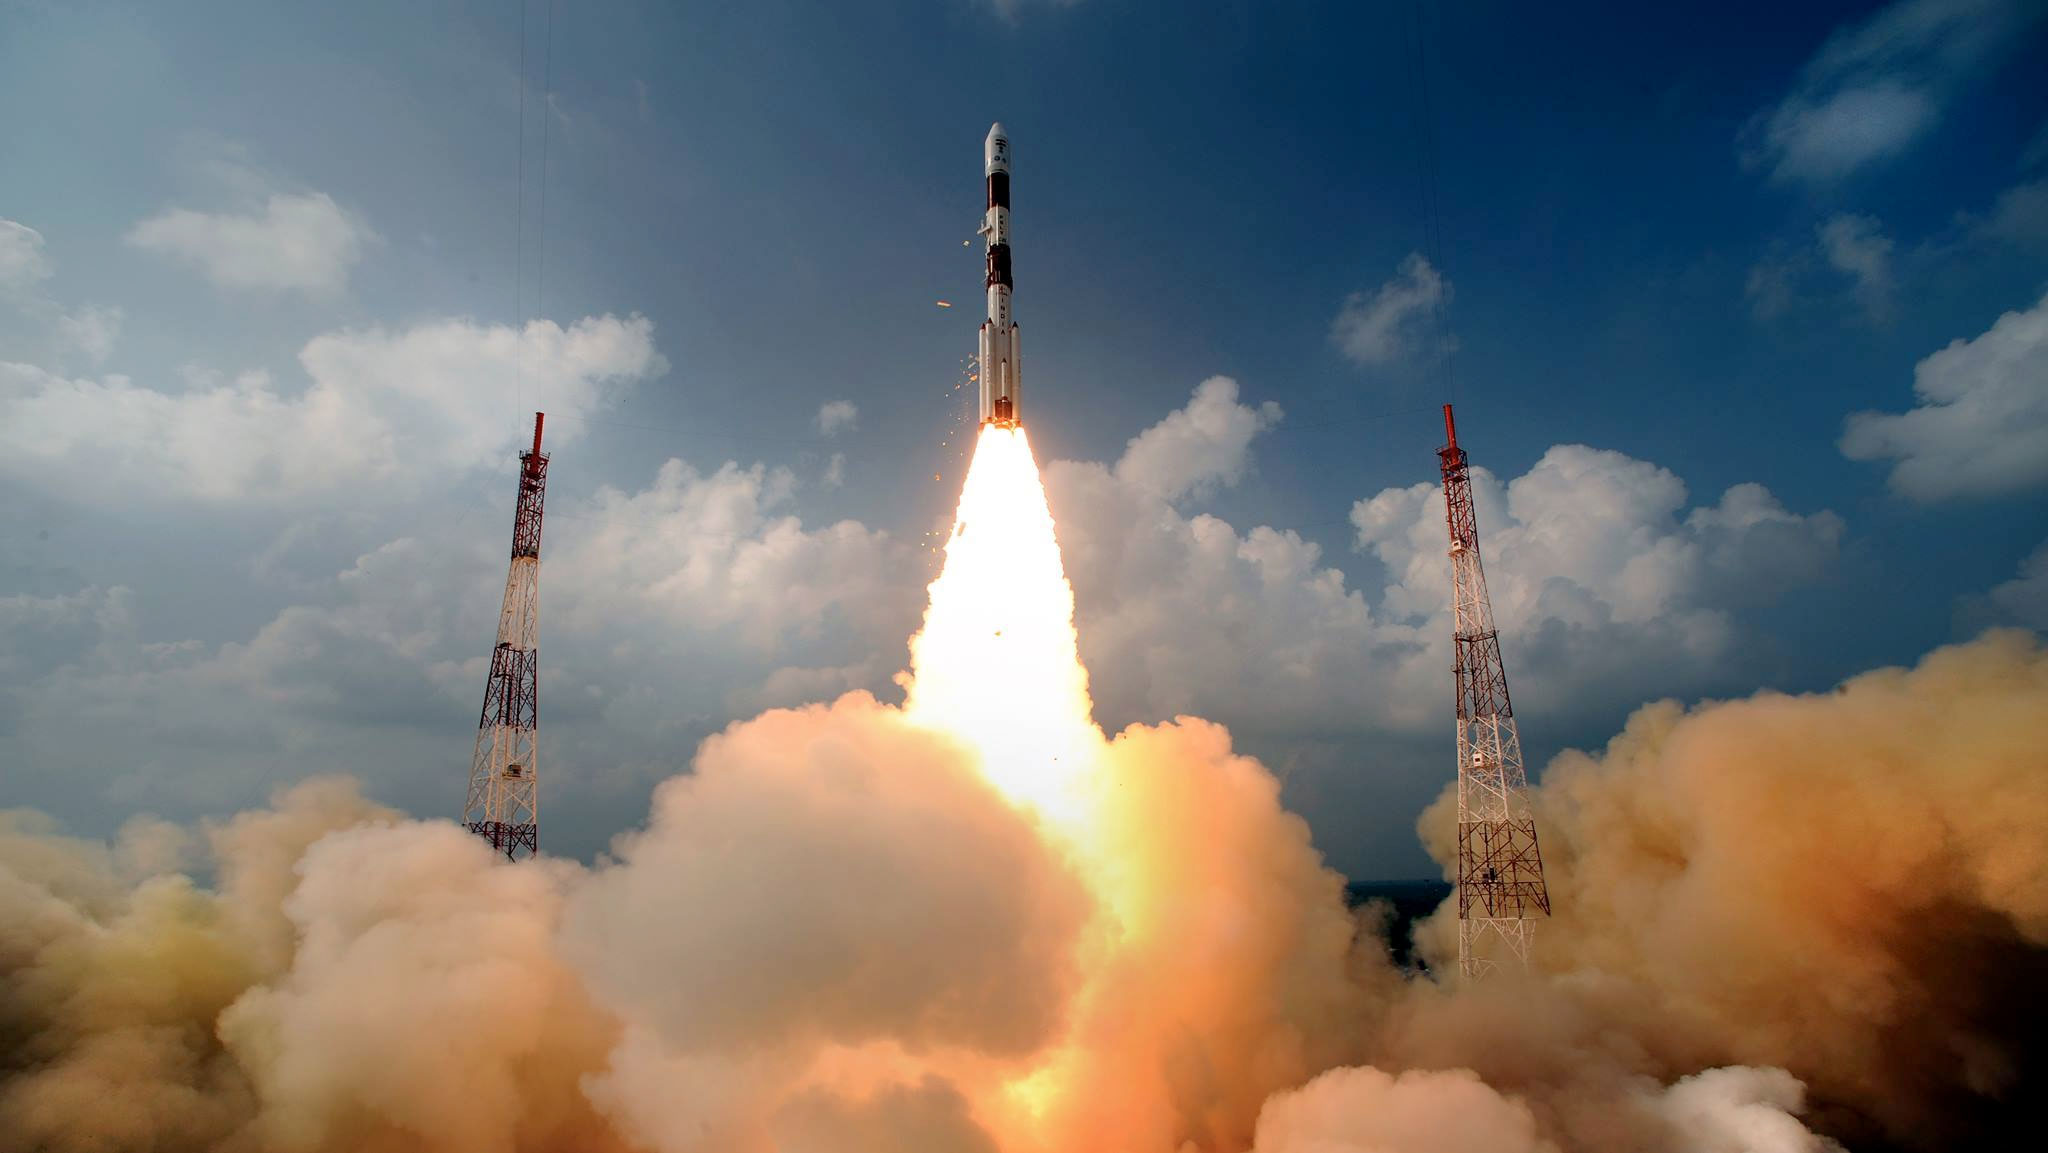 http://www.collectspace.com/images/news-110513a-lg.jpg Mangalyaan Rocket